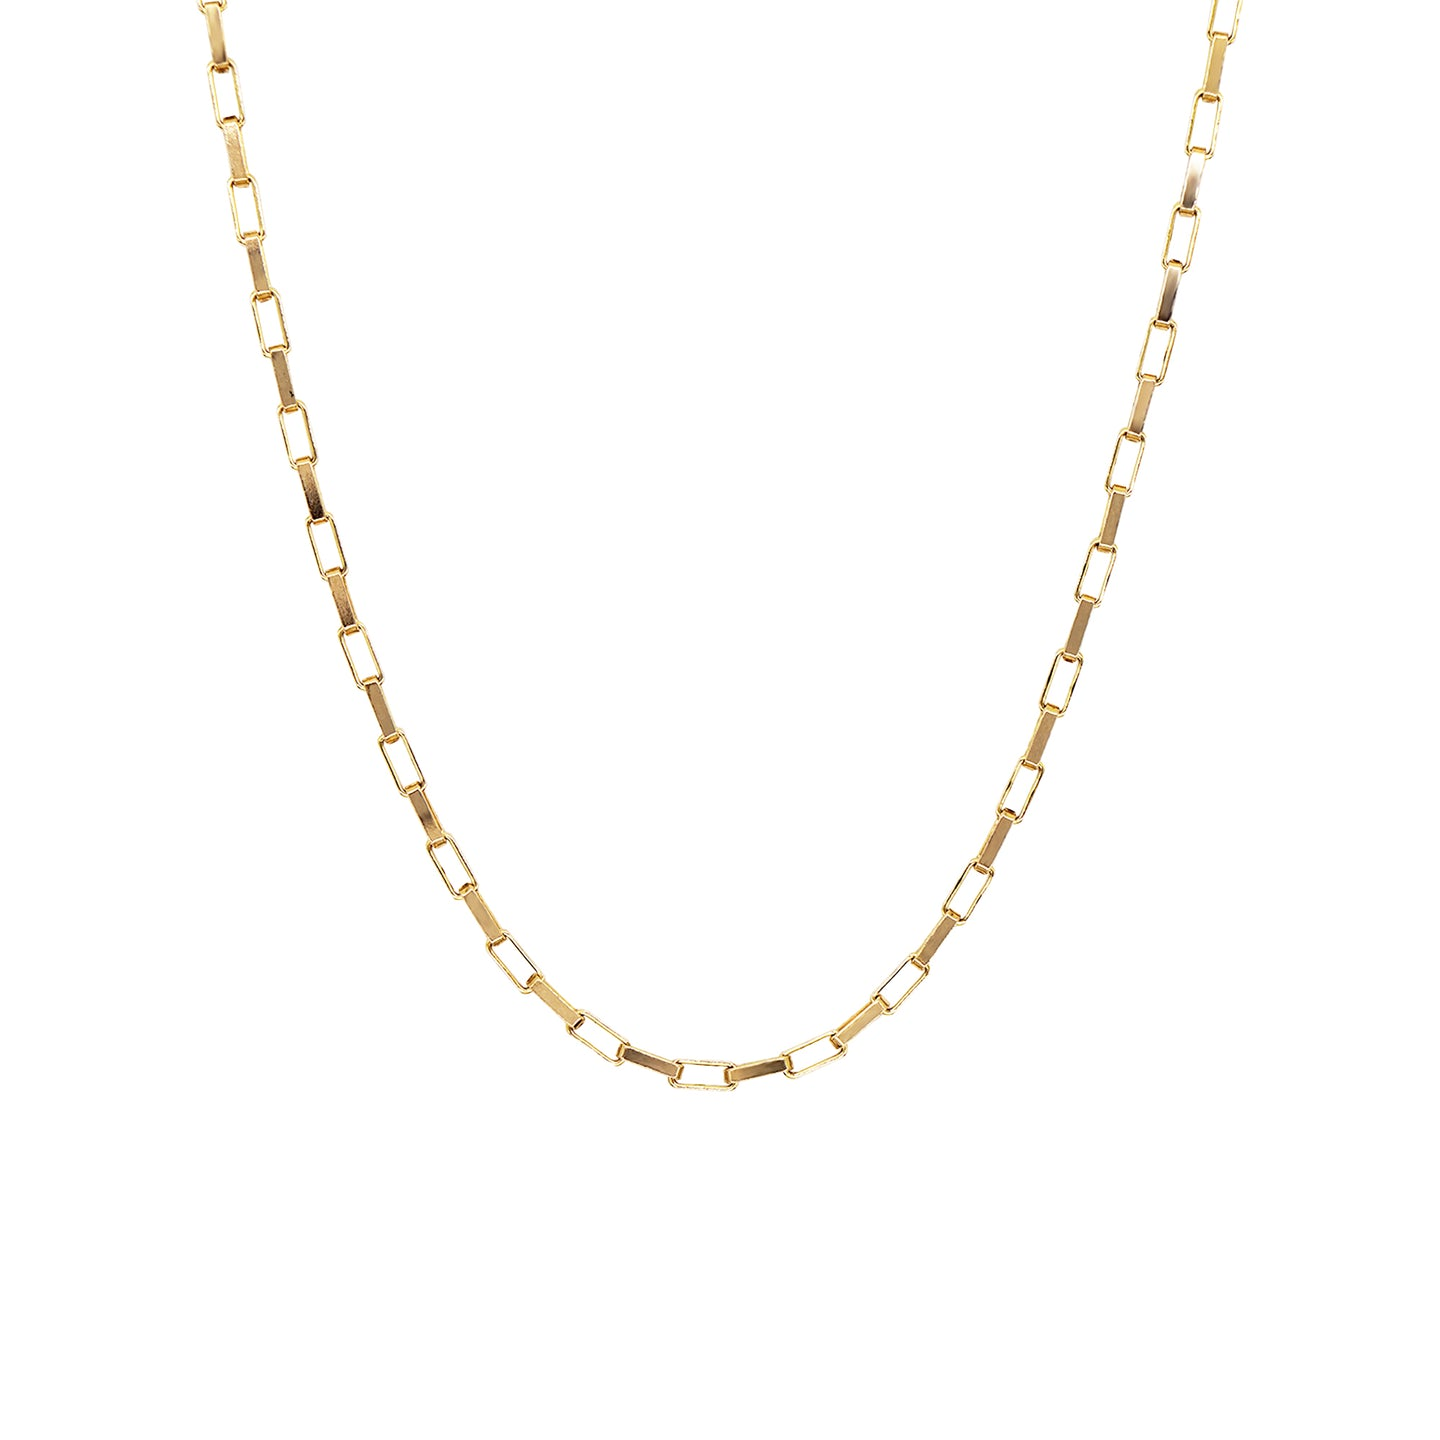 Vintage 9K gold paper link chain necklace on a white background.